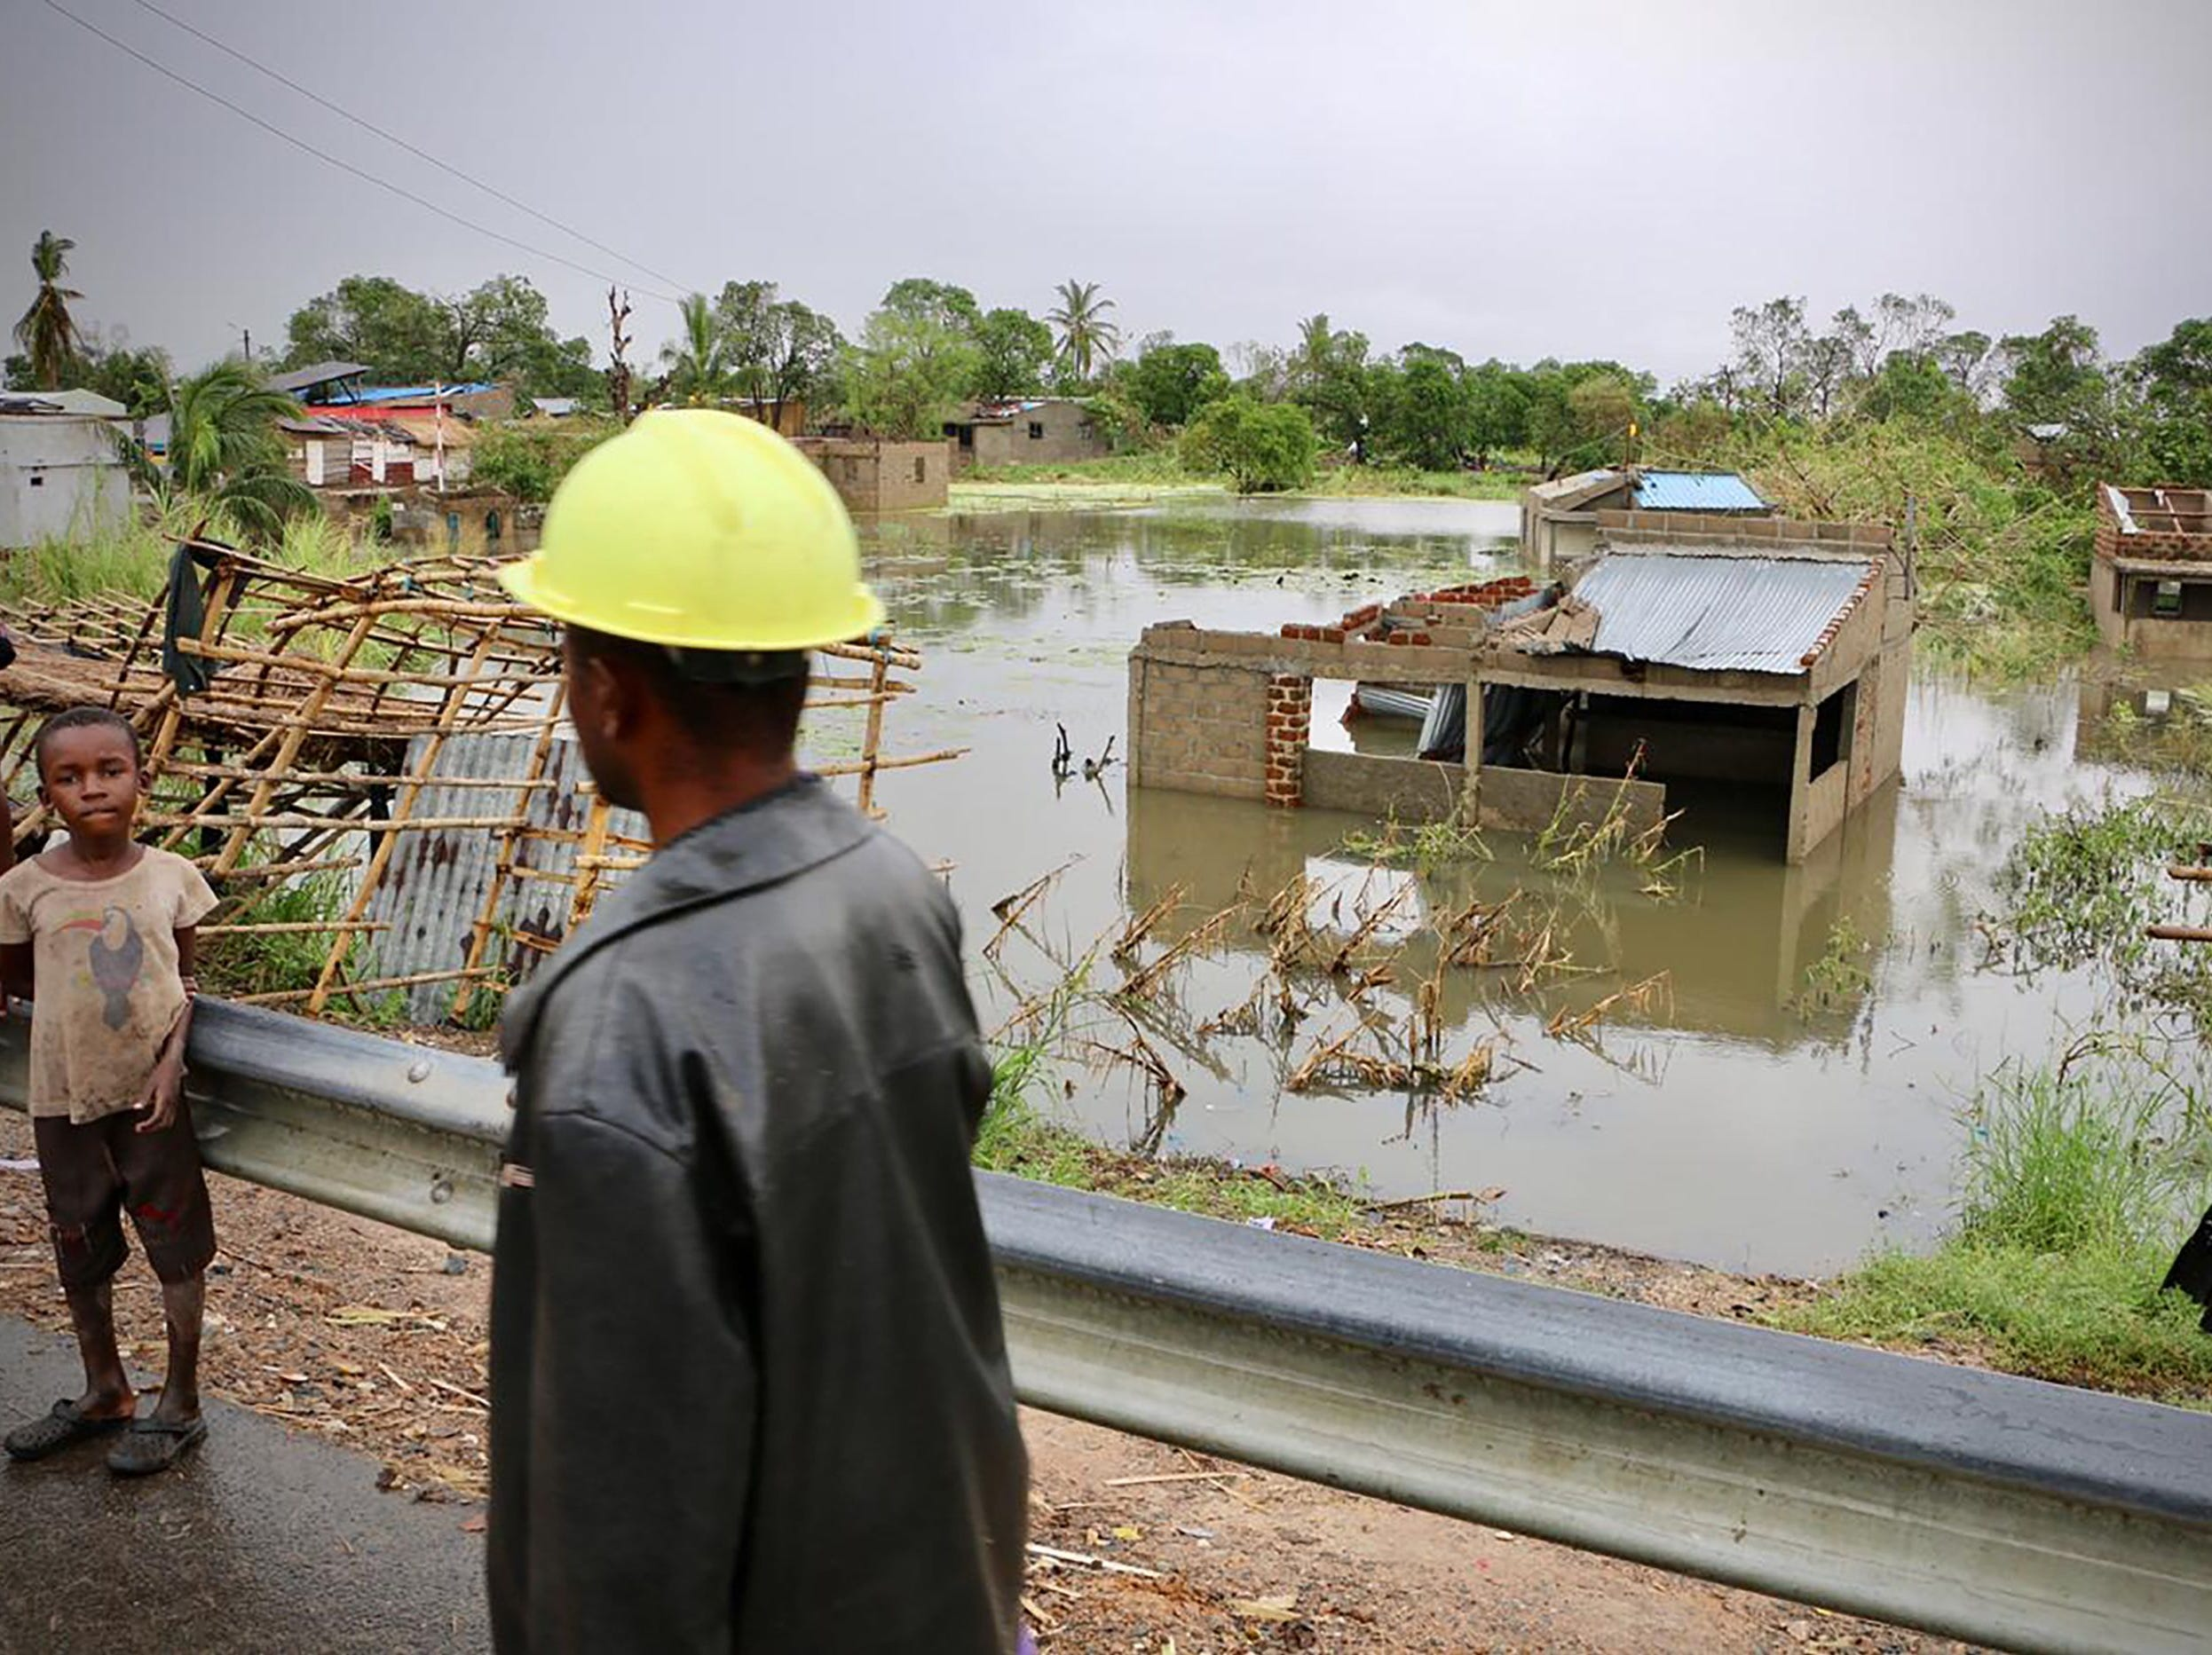 Locals stand near the flooded village of Tica in central Mozambique, on March 19, 2019, after the area was hit by the Cyclone Idai. Rescue workers in Mozambique were racing against time to pluck people off trees and rooftops, after a monster storm reaped a feared harvest of more than 1,000 lives before smashing into Zimbabwe.